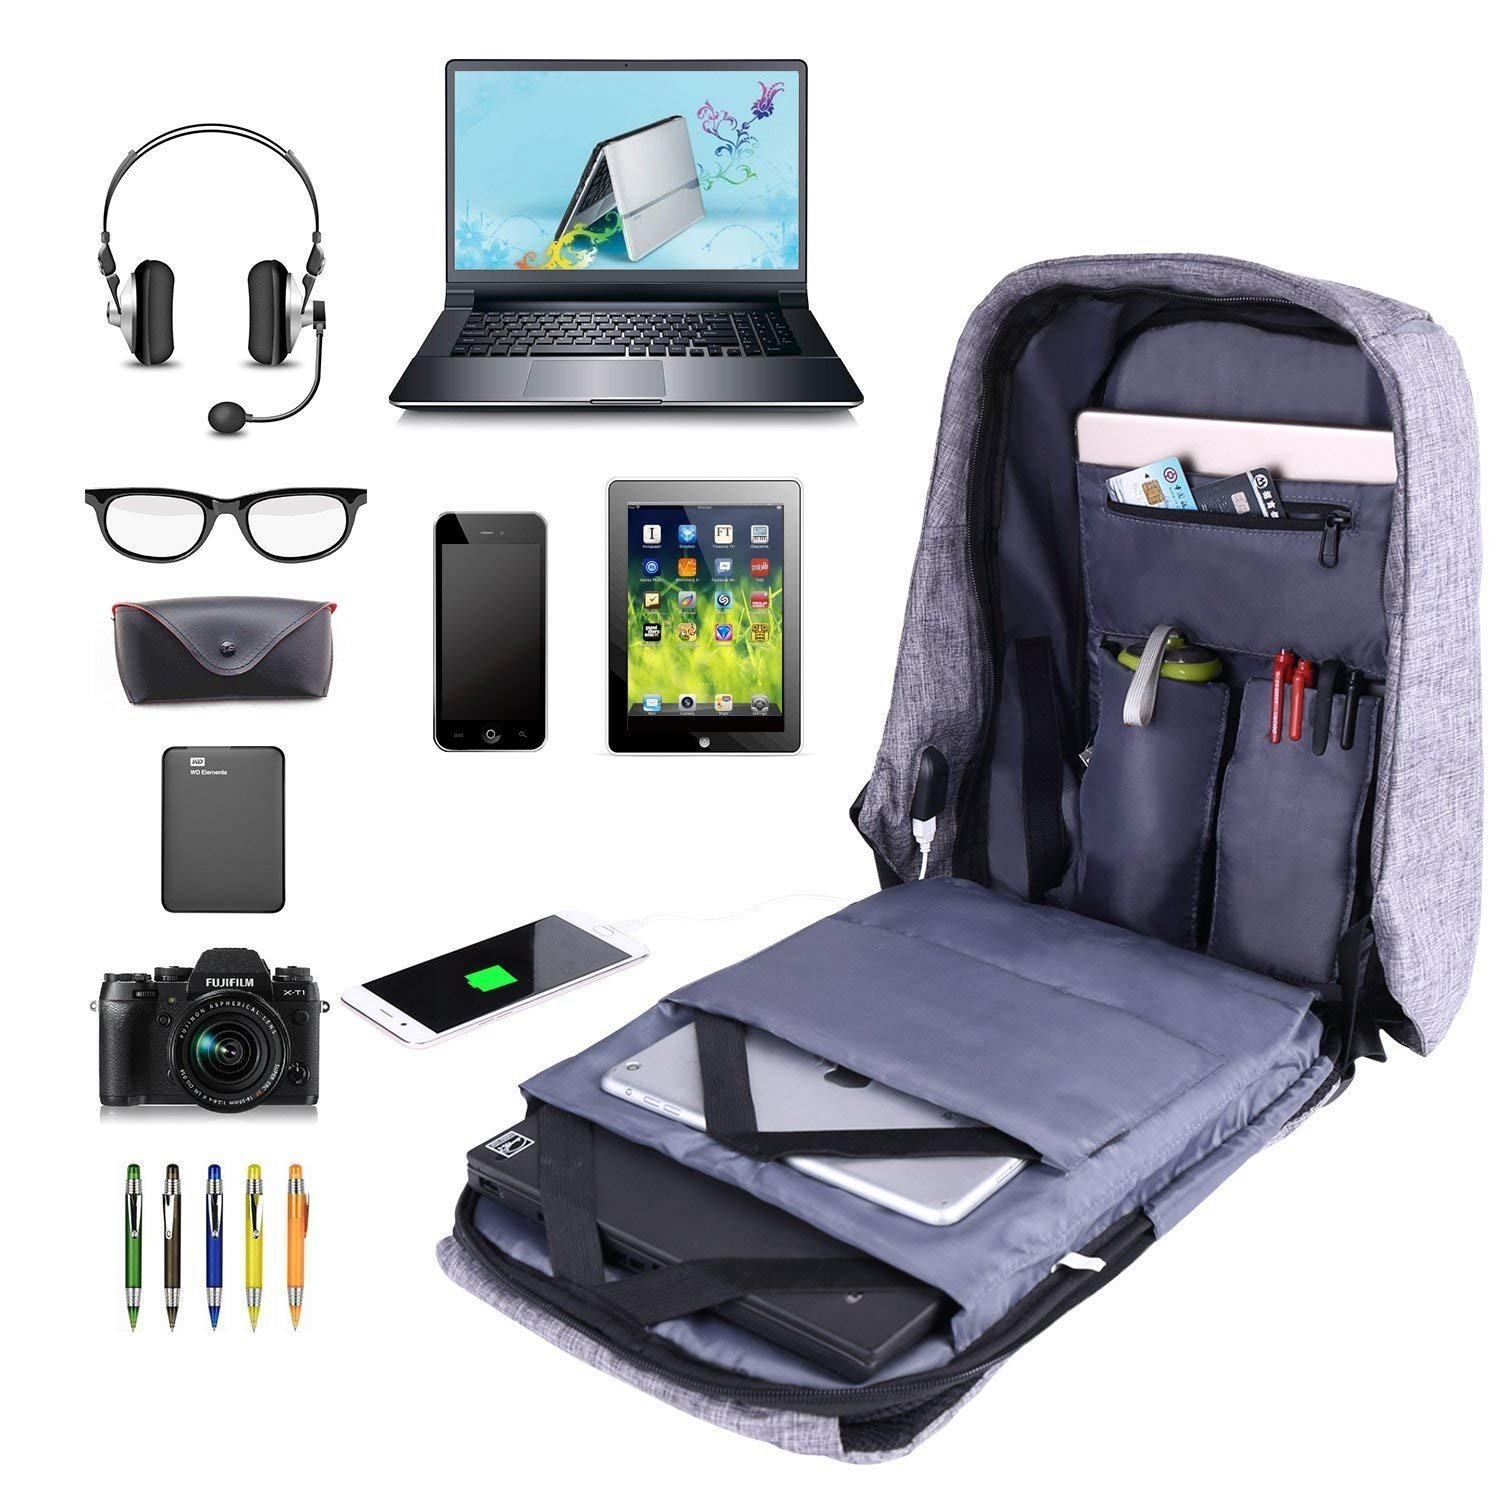 Laptop Backpack business anti-theft waterproof travel computer backpack with USB charging port college school computer bag for women & men fits 15.6 Inch Laptop and Notebook - Grey by Langus (Image #3)